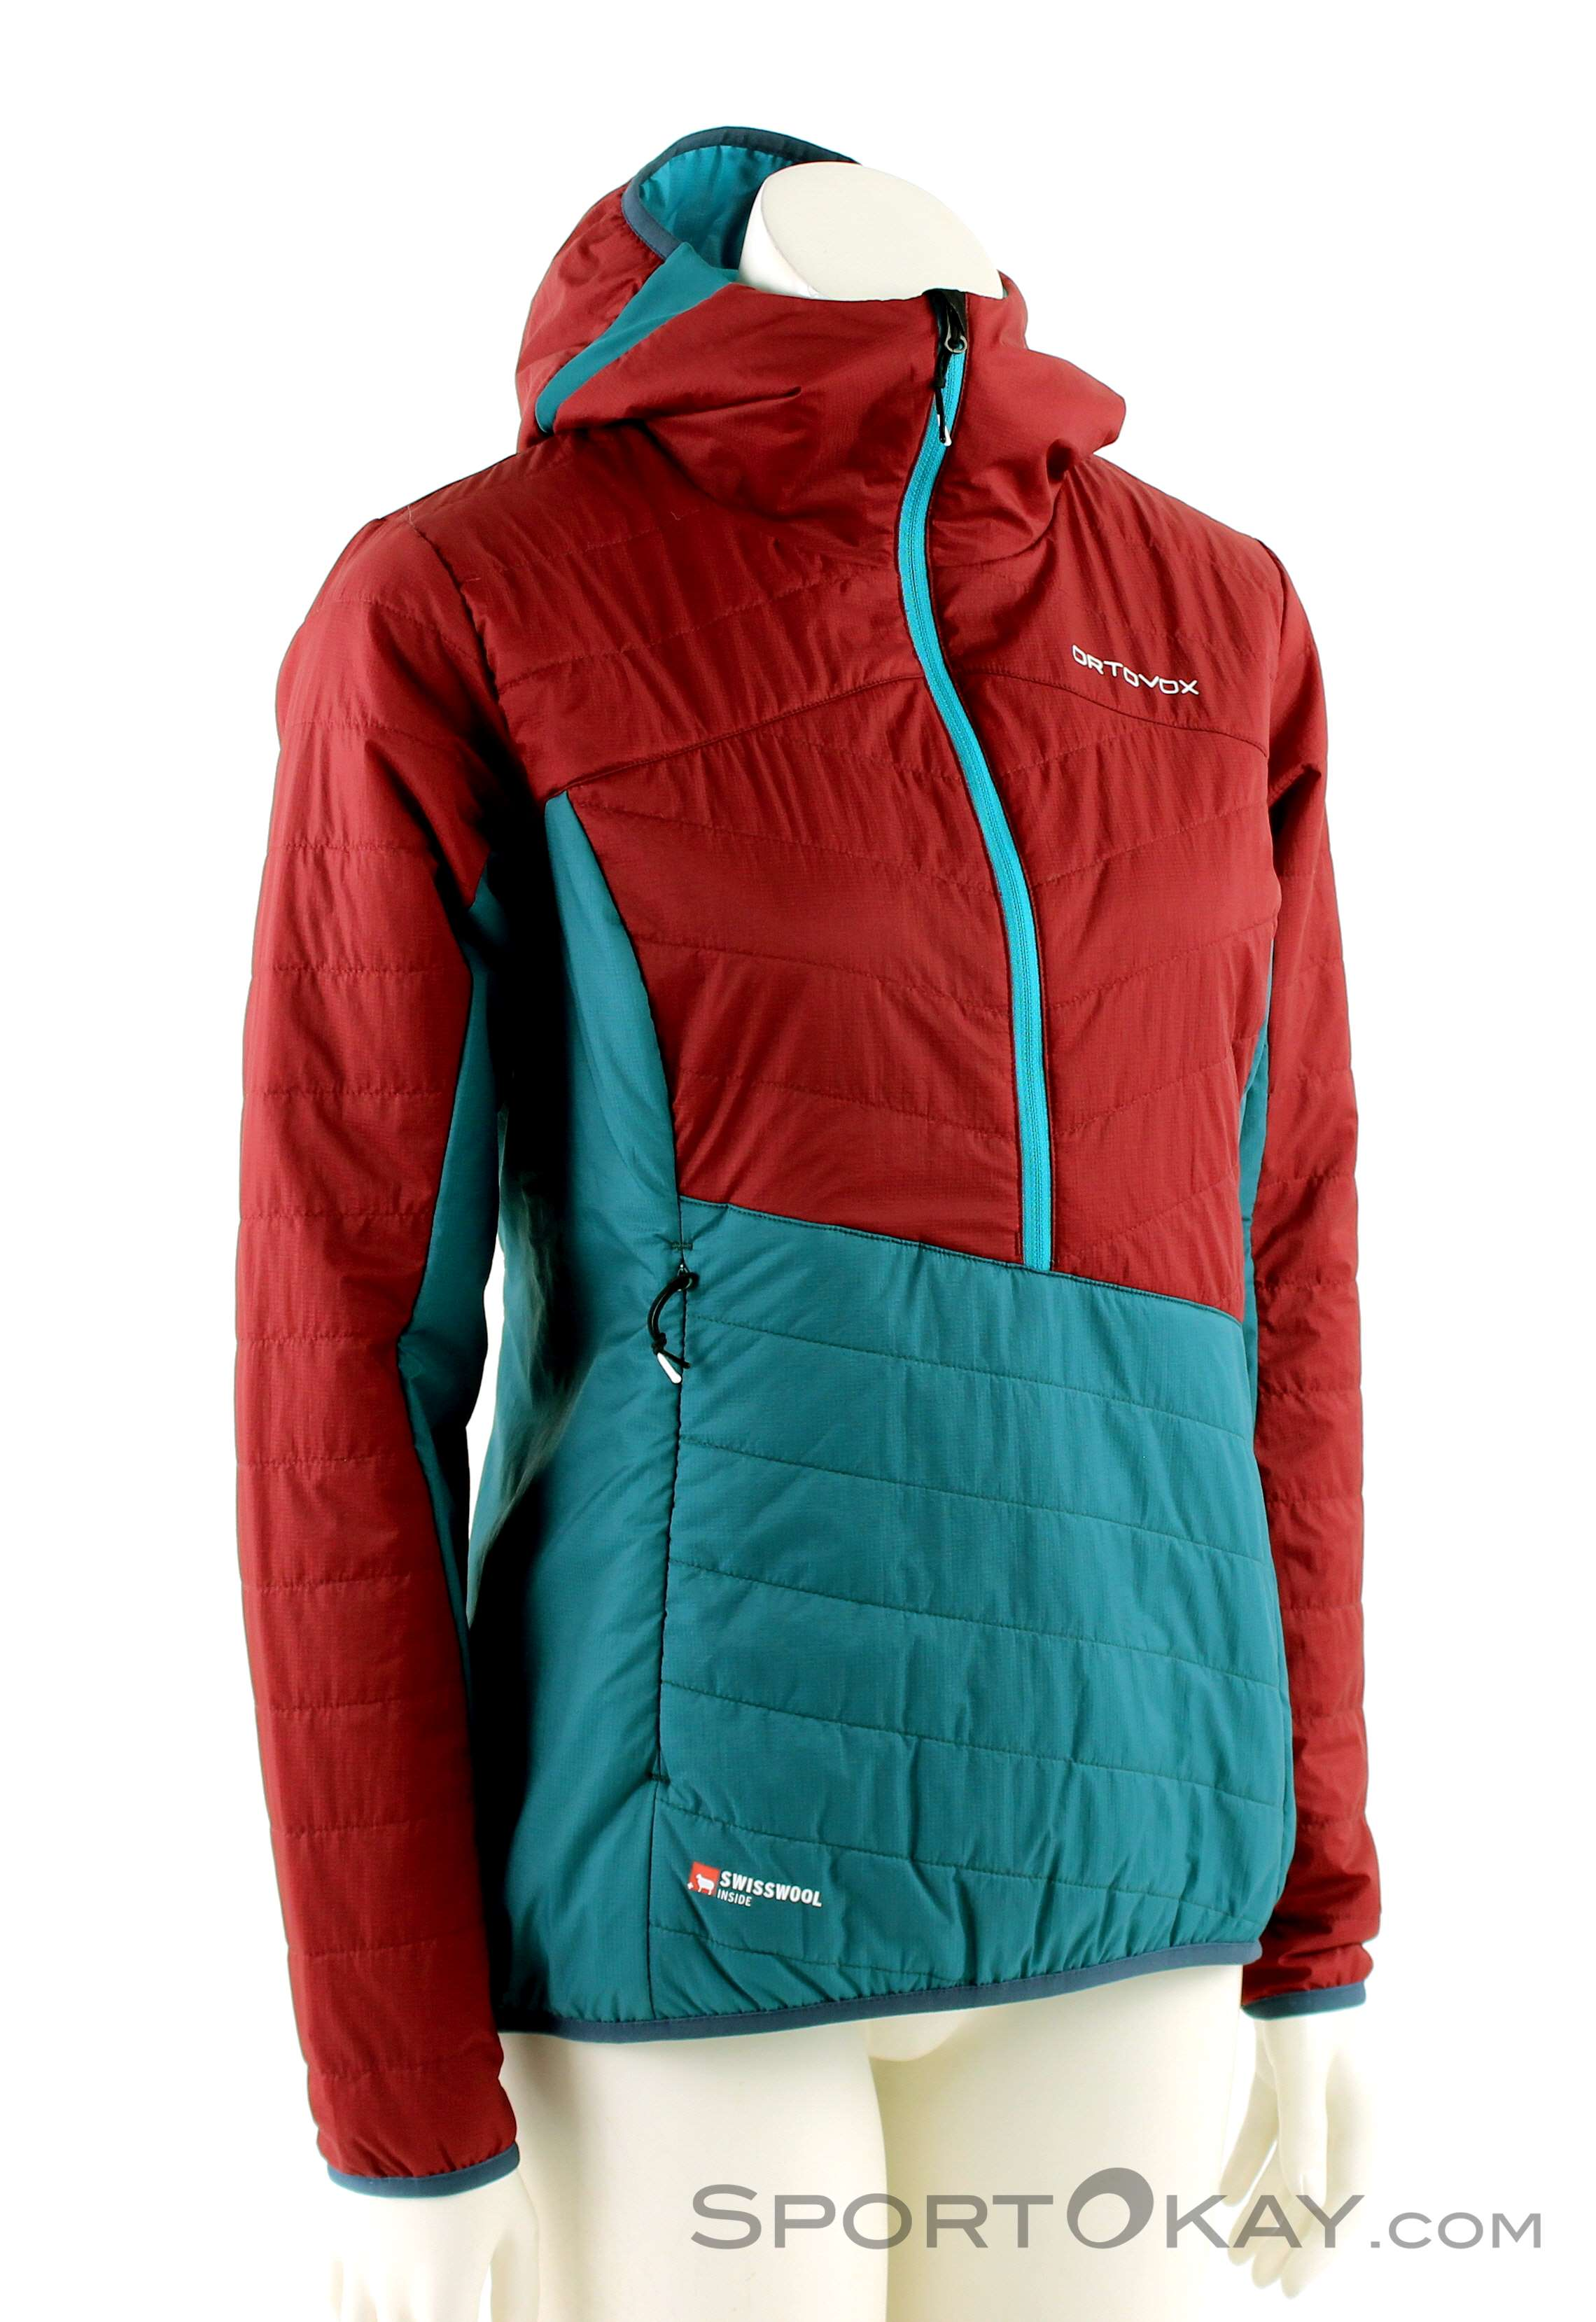 newest 05700 85d18 Ortovox Ortovox Swisswool Dufour Anorak Womens Outdoor Jacket